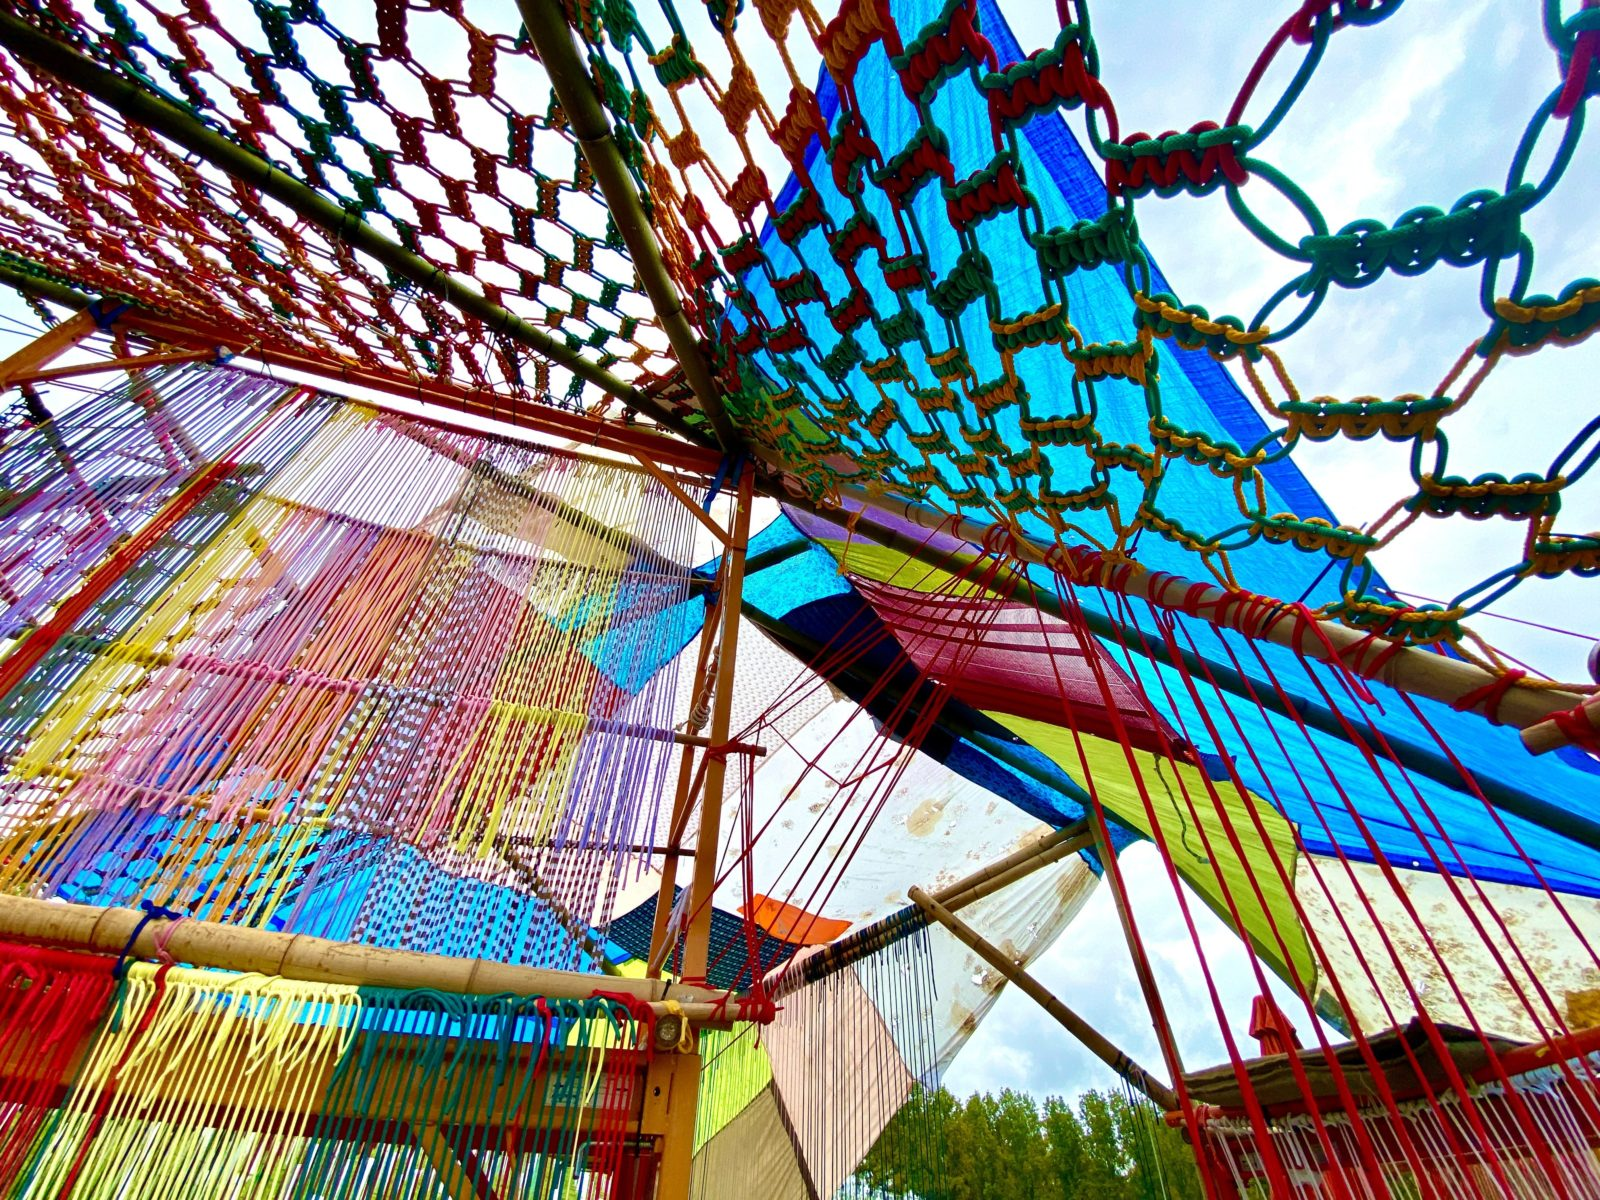 Colourful string netting is woven around bamboo poles creating a colourful tent